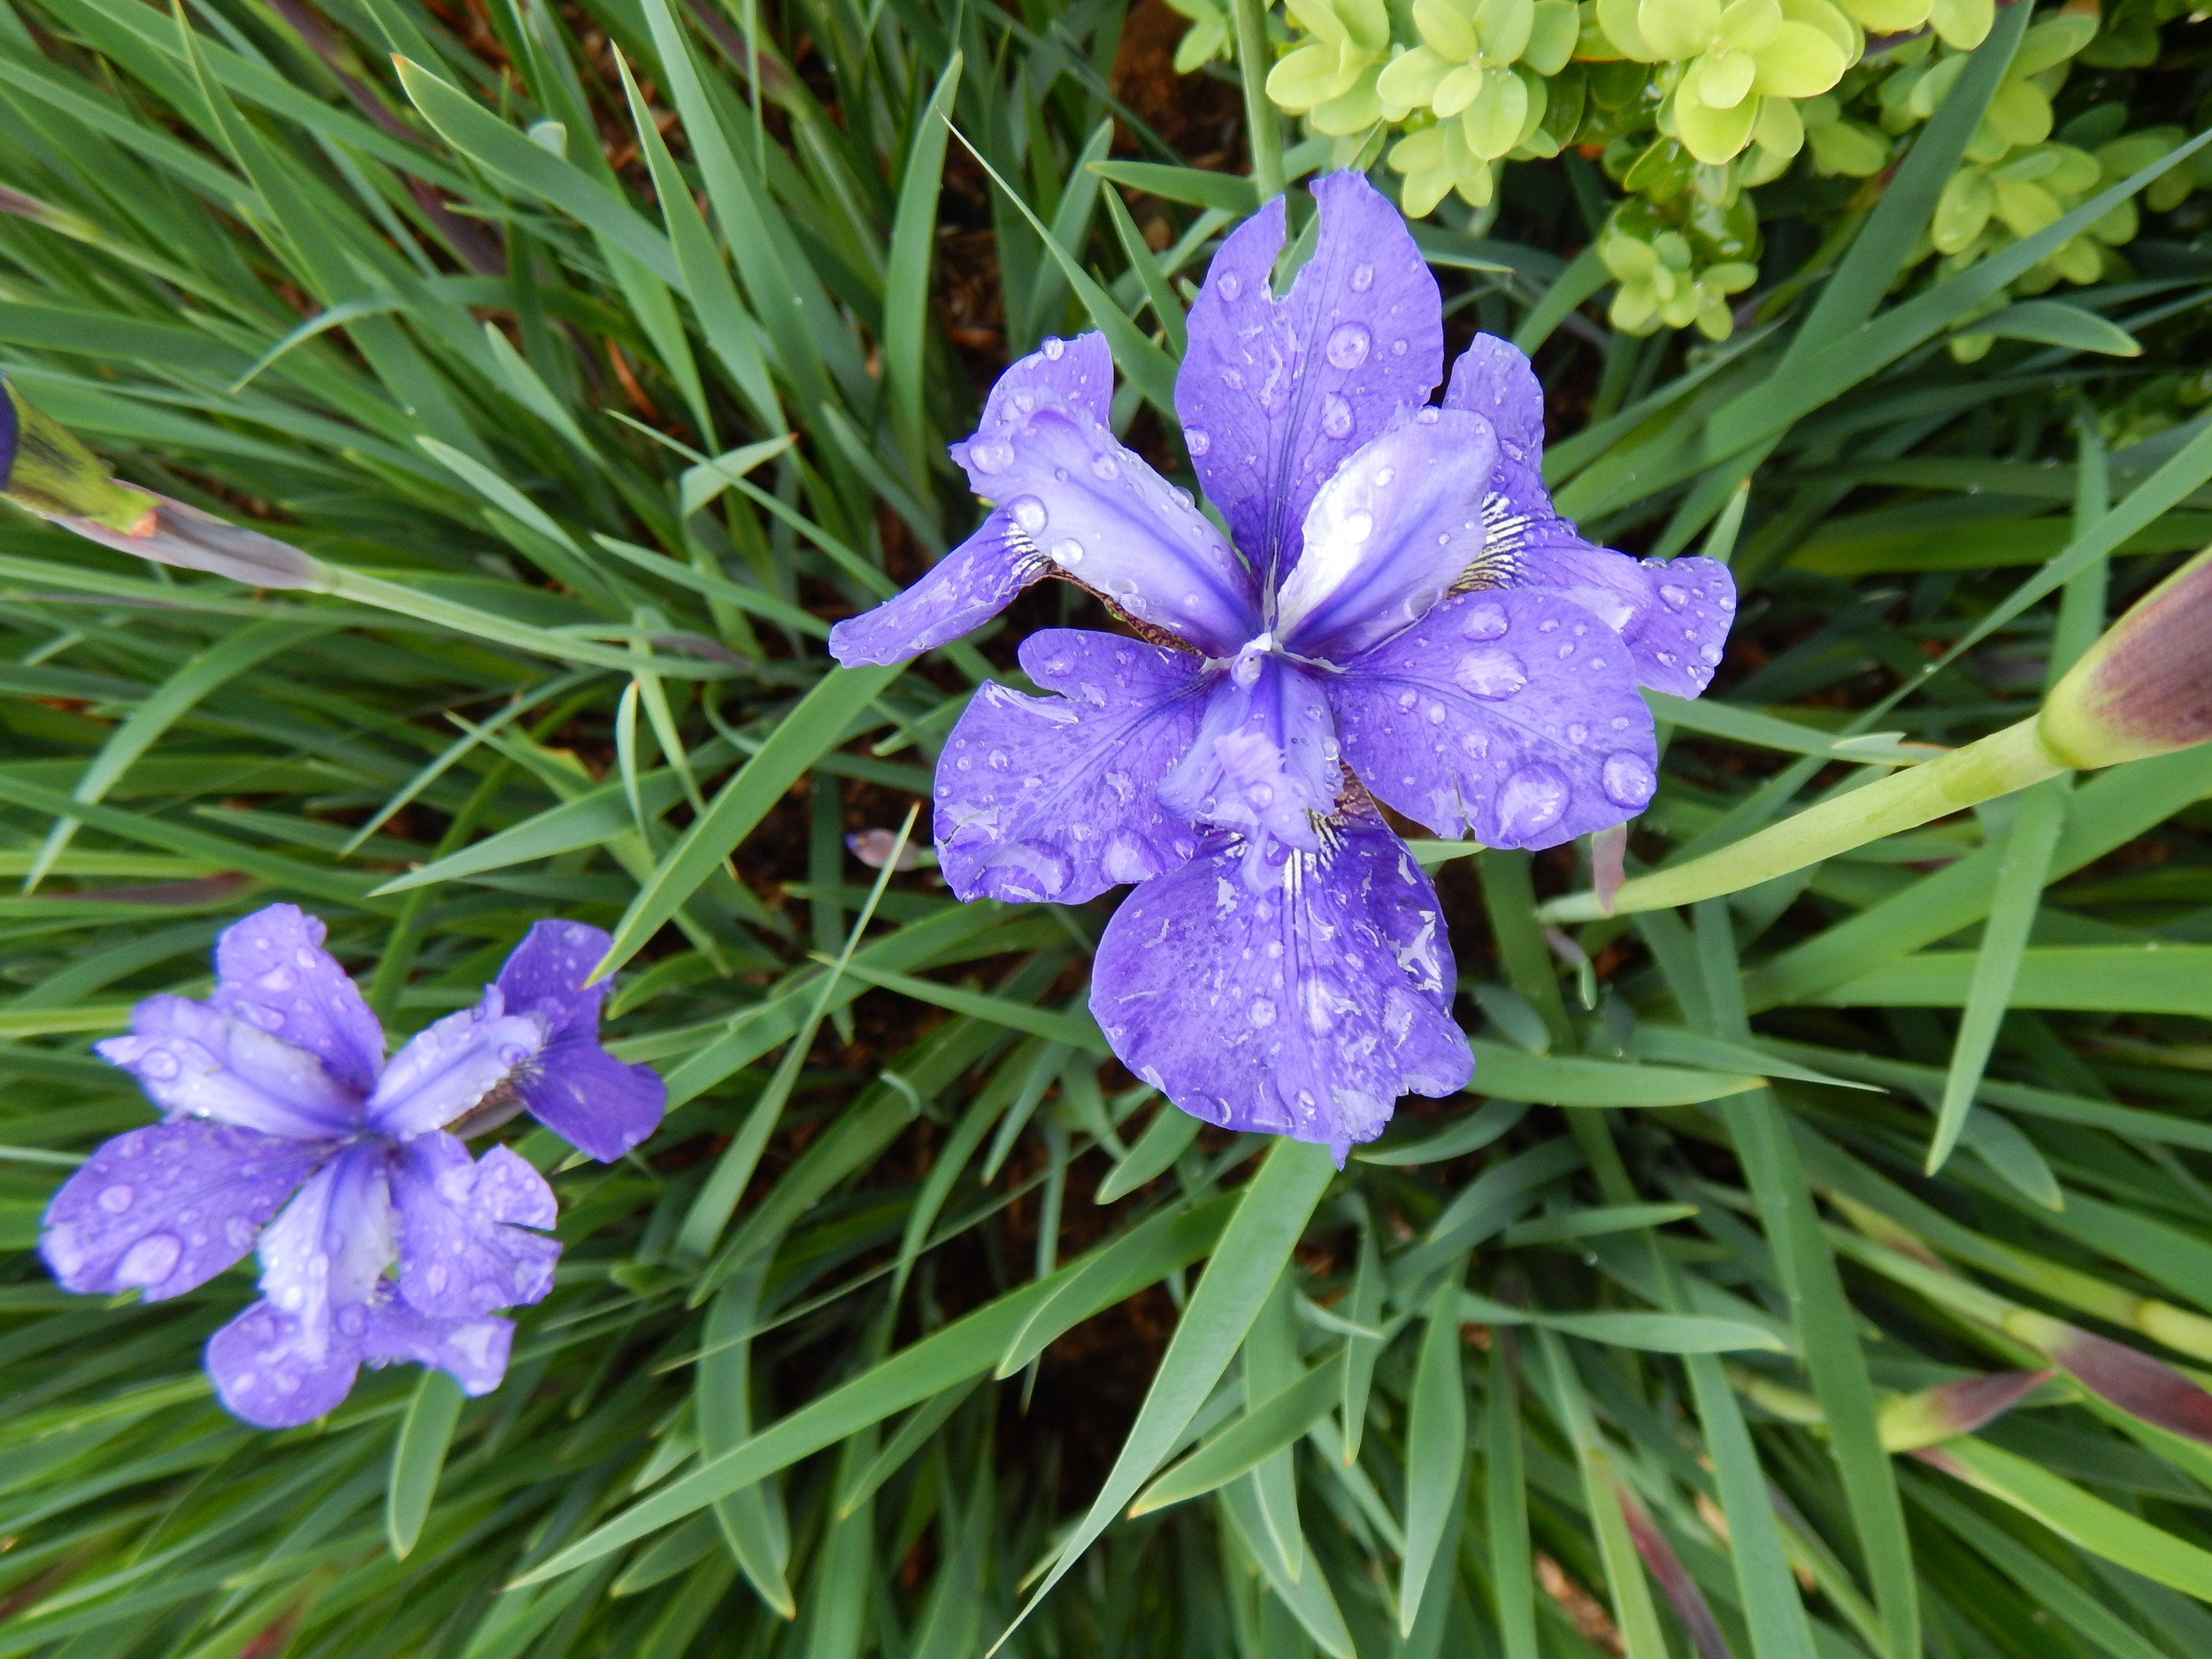 Peonies, snaps and Iris are blooming despite the rain.